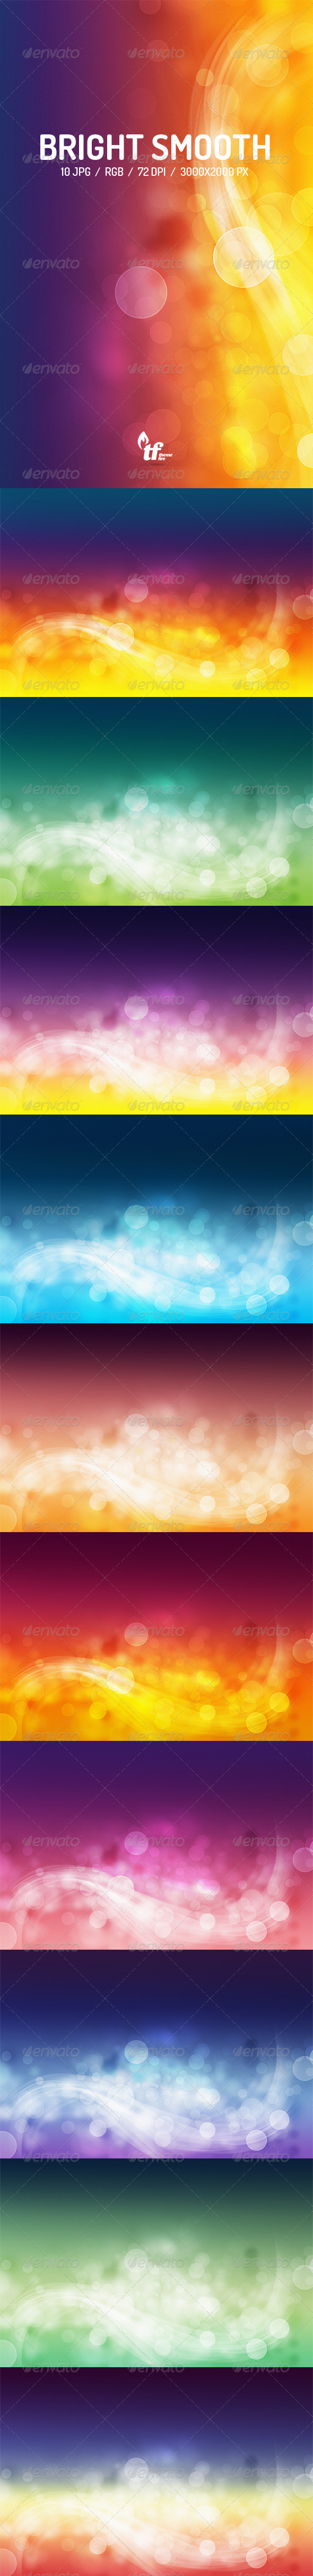 Abstract Bright Smooth Backgrounds